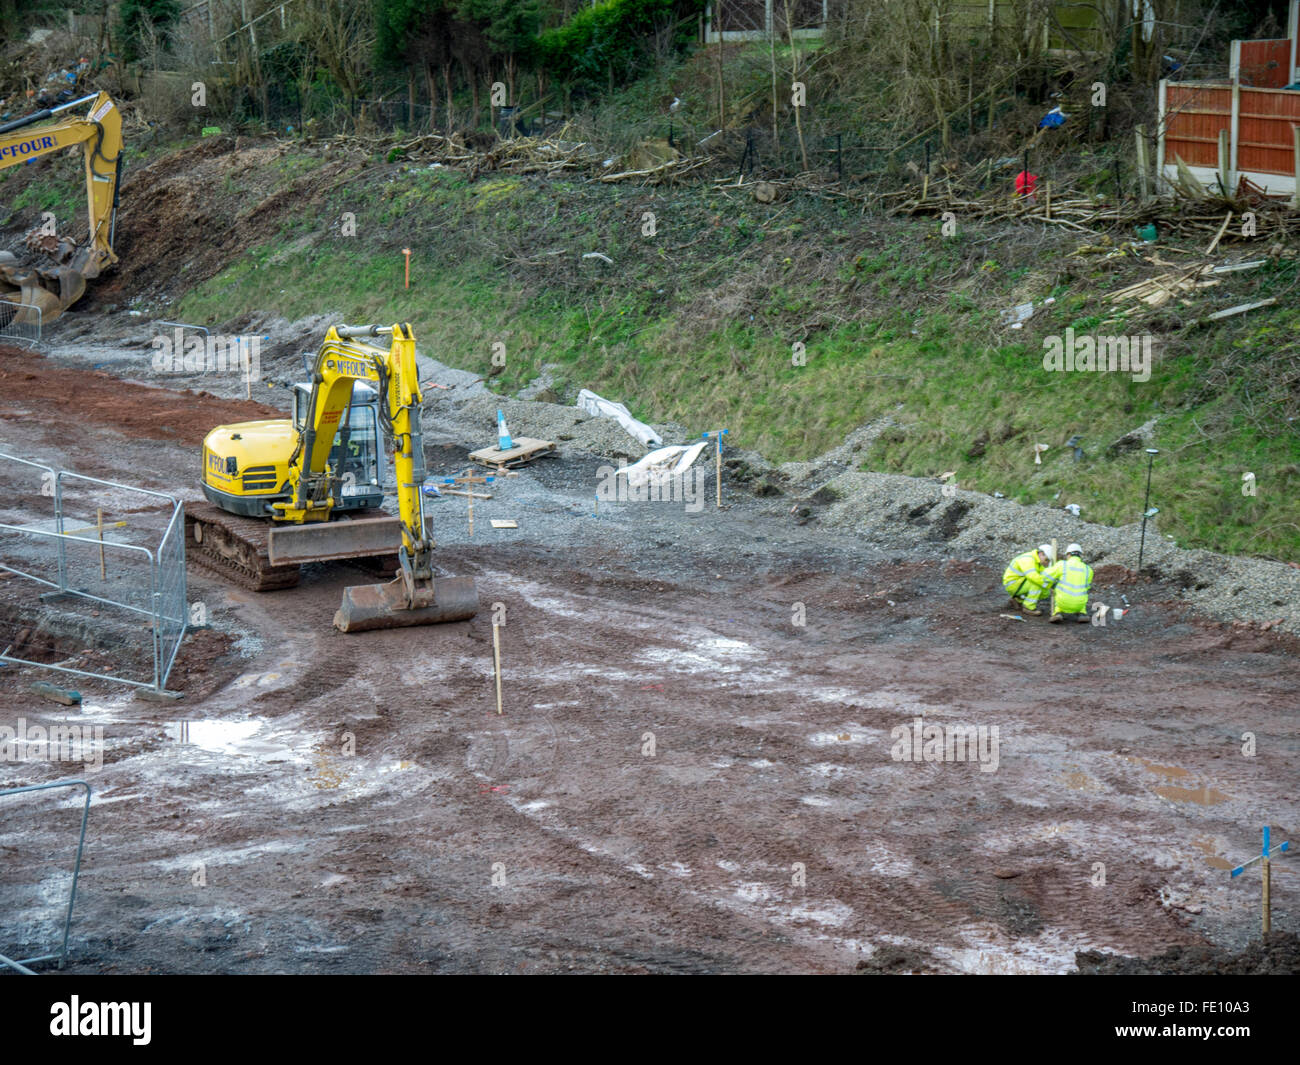 Diggers working with men in safety jackets and helmets placing wooden markers. - Stock Image